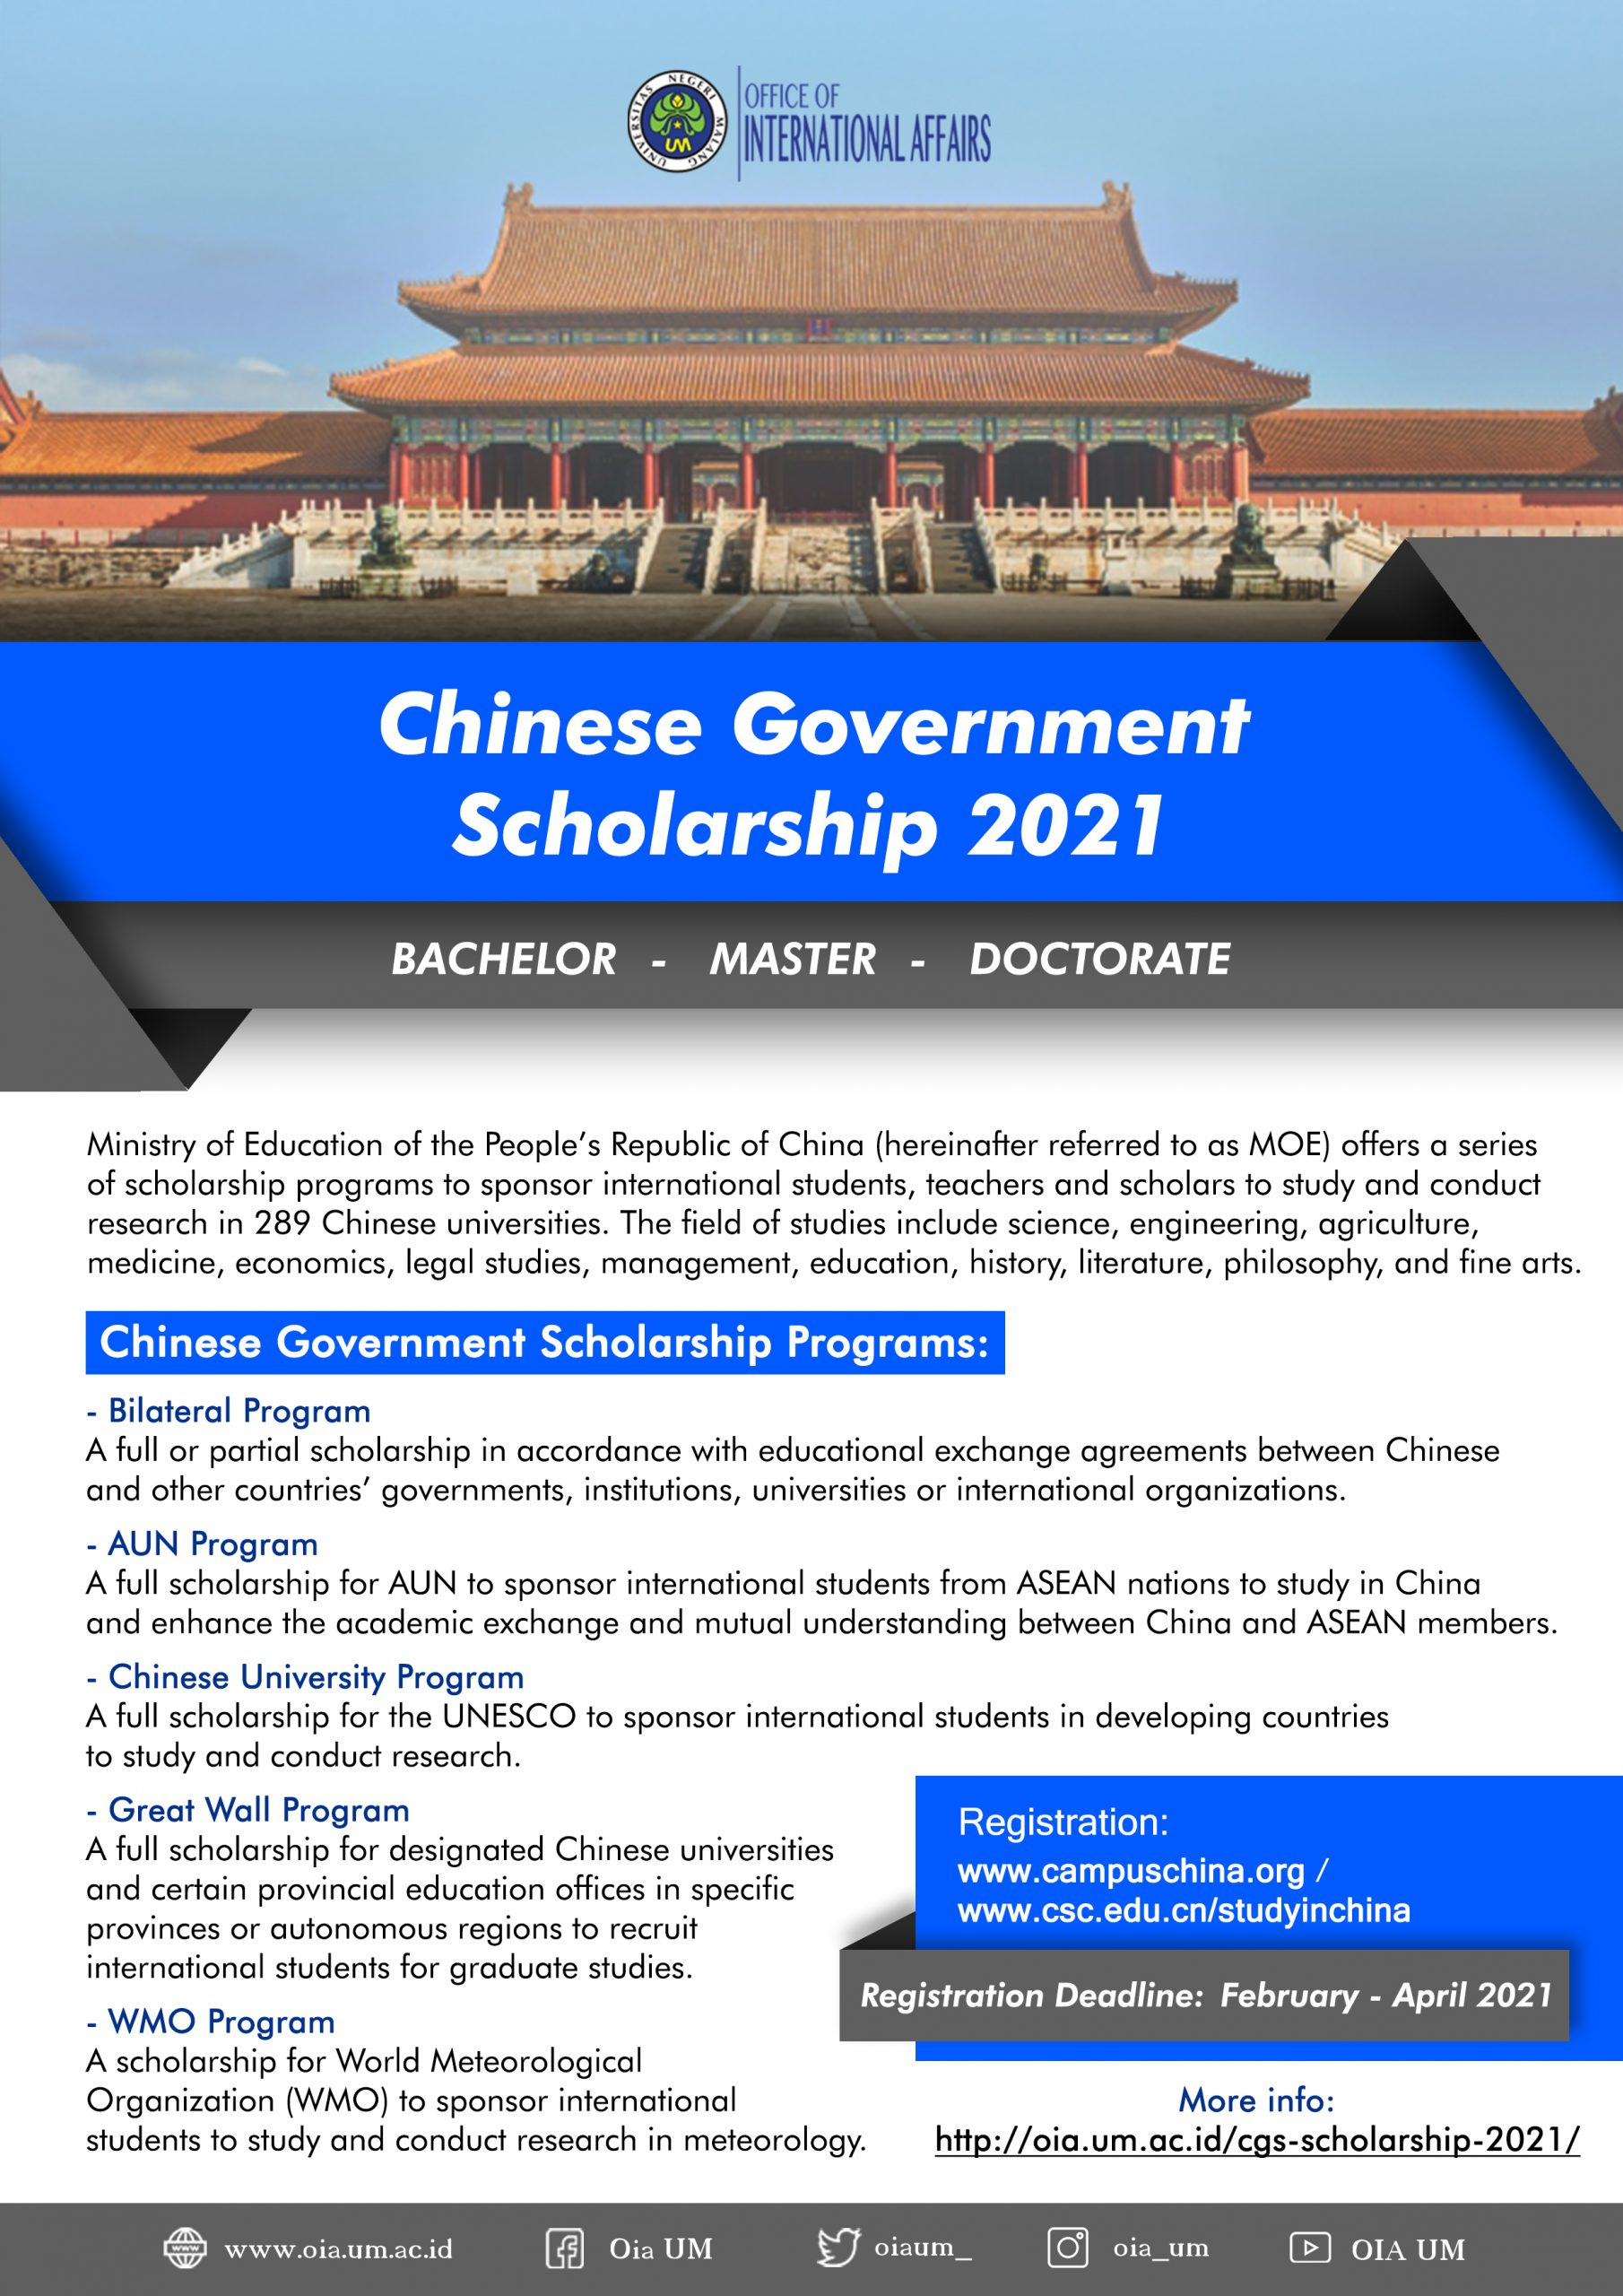 CHINESE GOVERNMENT SCHOLARSHIP 2021